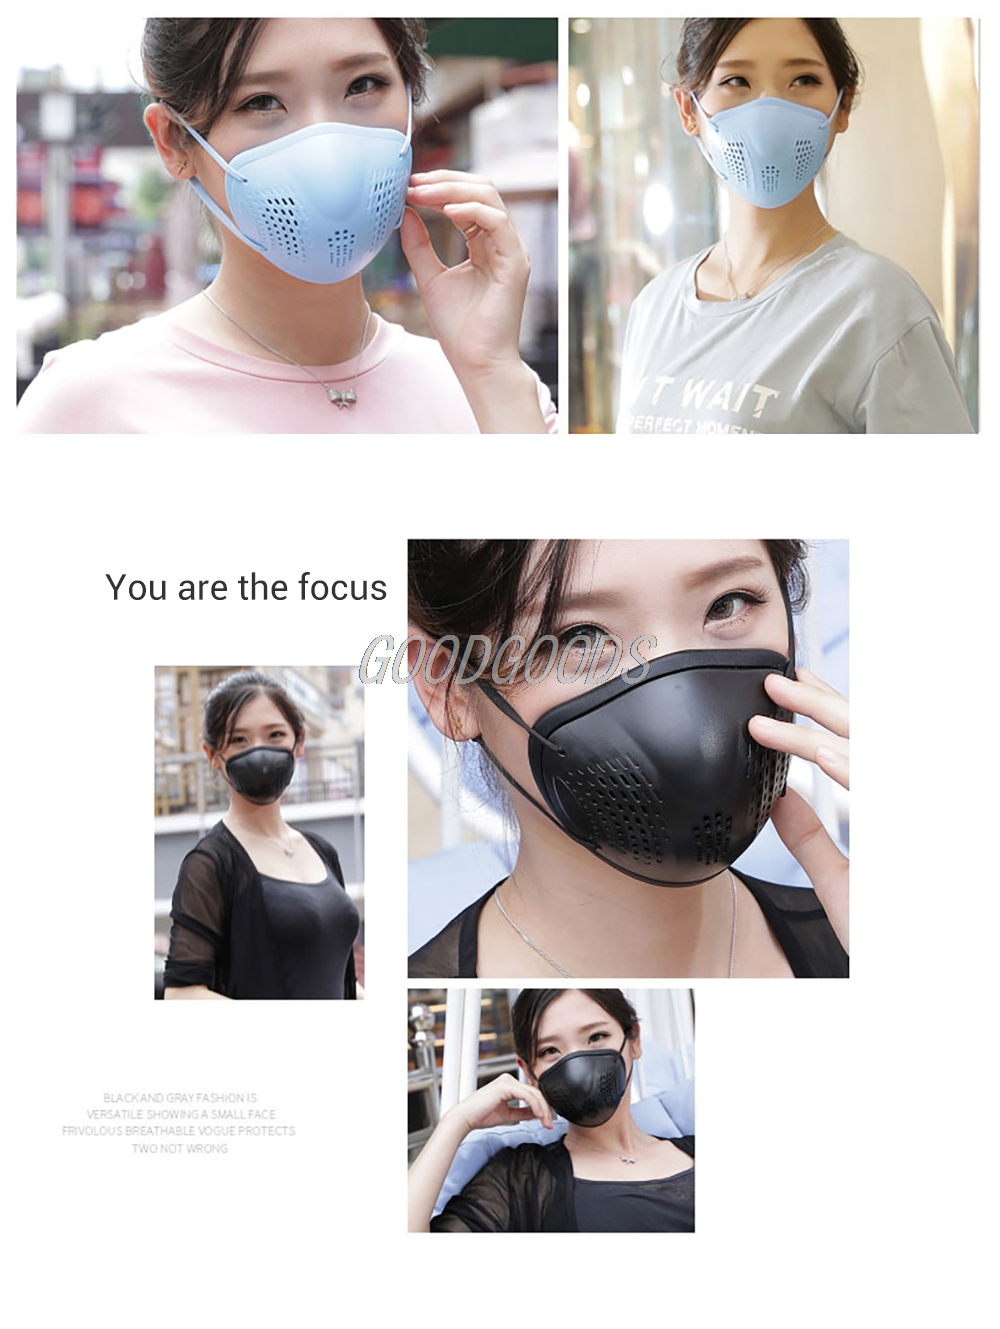 Hffe3dc1772484b5293478fe2a95da513q Silicon Face Mask Dustproof Mask Facial Protective Cover Washable Masks Anti-Dust Bacteria Proof Facemask PM2.5 Pollution